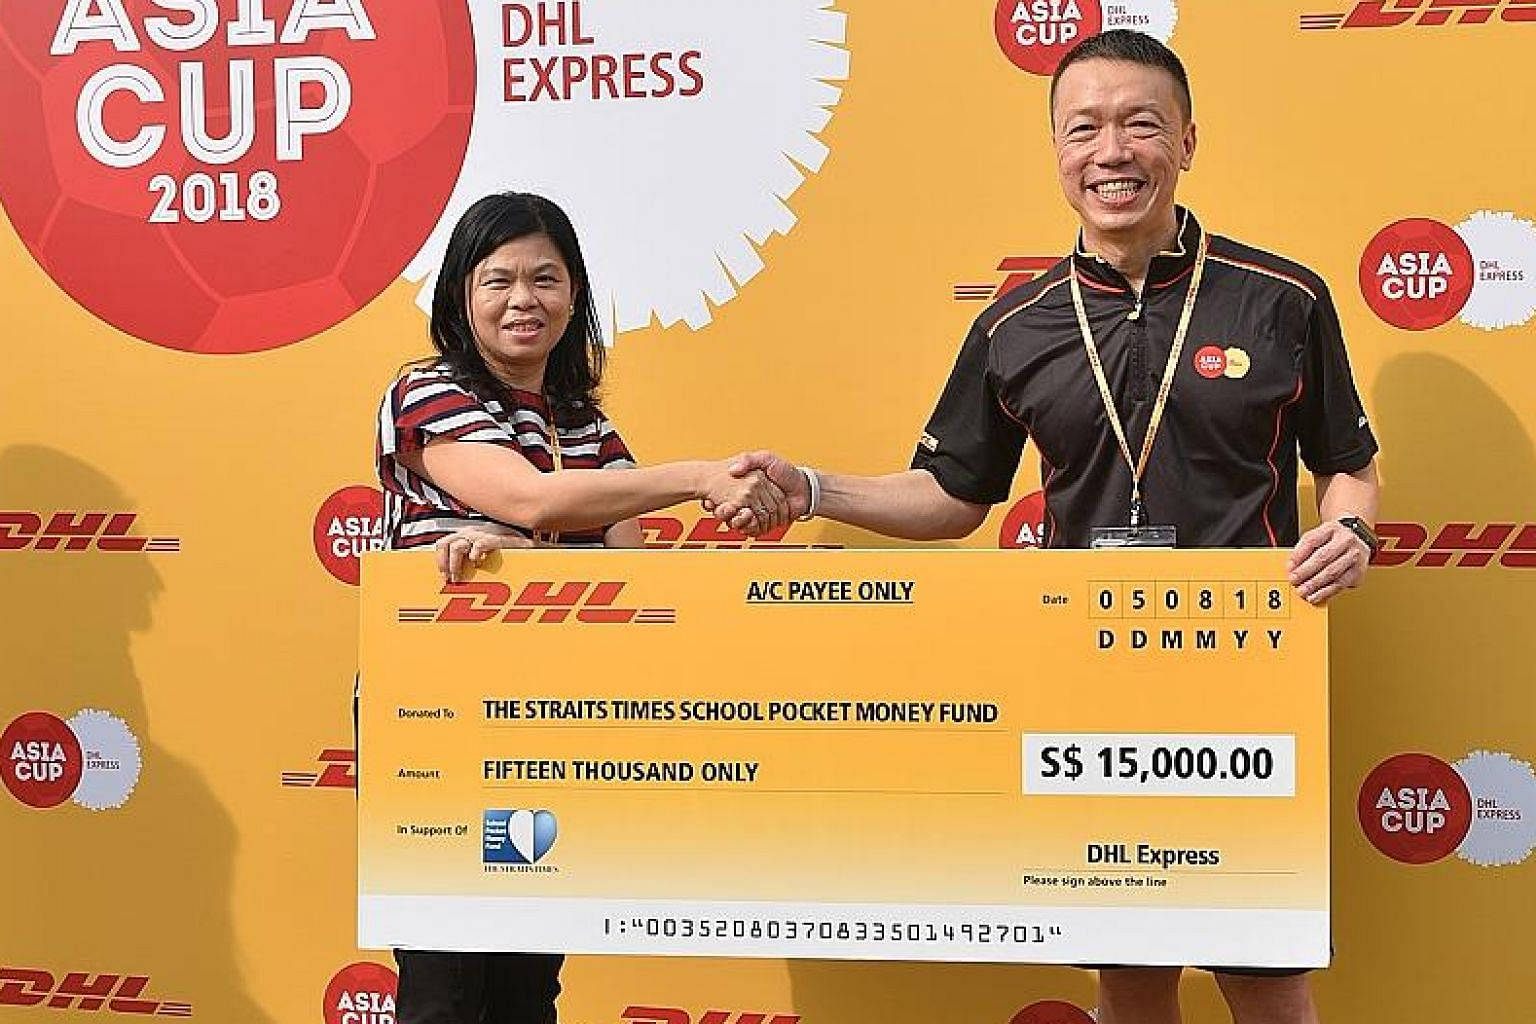 Ms Tan Bee Heong, General Manager, STSPMF, receiving the cheque from Ken Lee, CEO DHL Express Asia Pacific. DHL organised a football clinic for 20 ST School Pocket Money Fund beneficiaries.